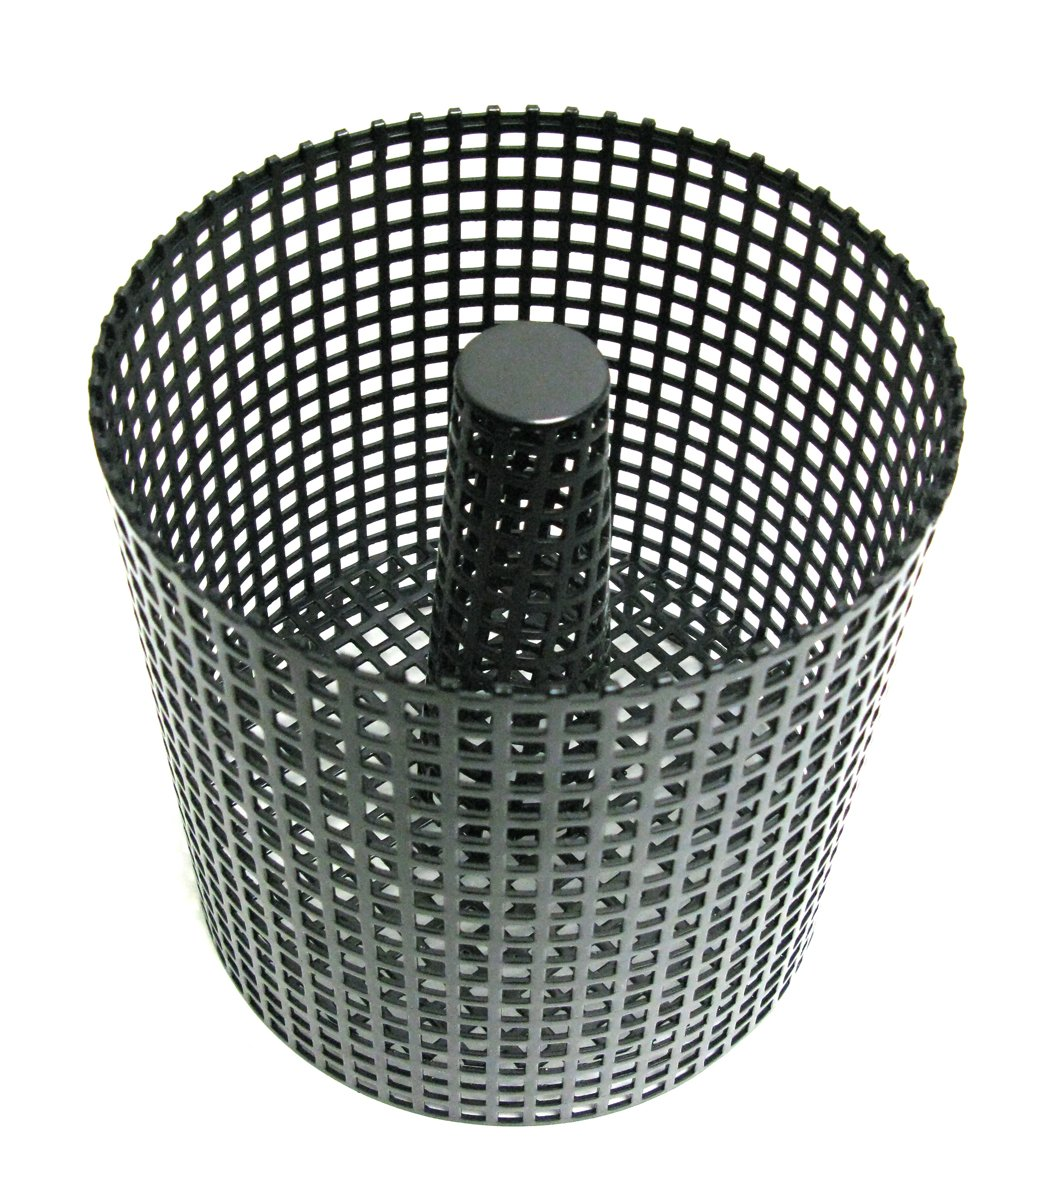 Pelletray 13251 - Leña para chimenea, color: negro 013251